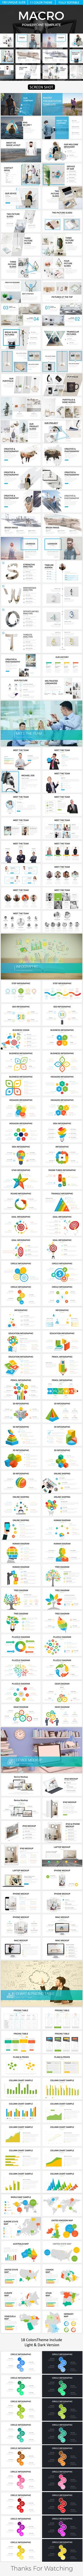 Macro PowerPoint Templates (PowerPoint Templates)